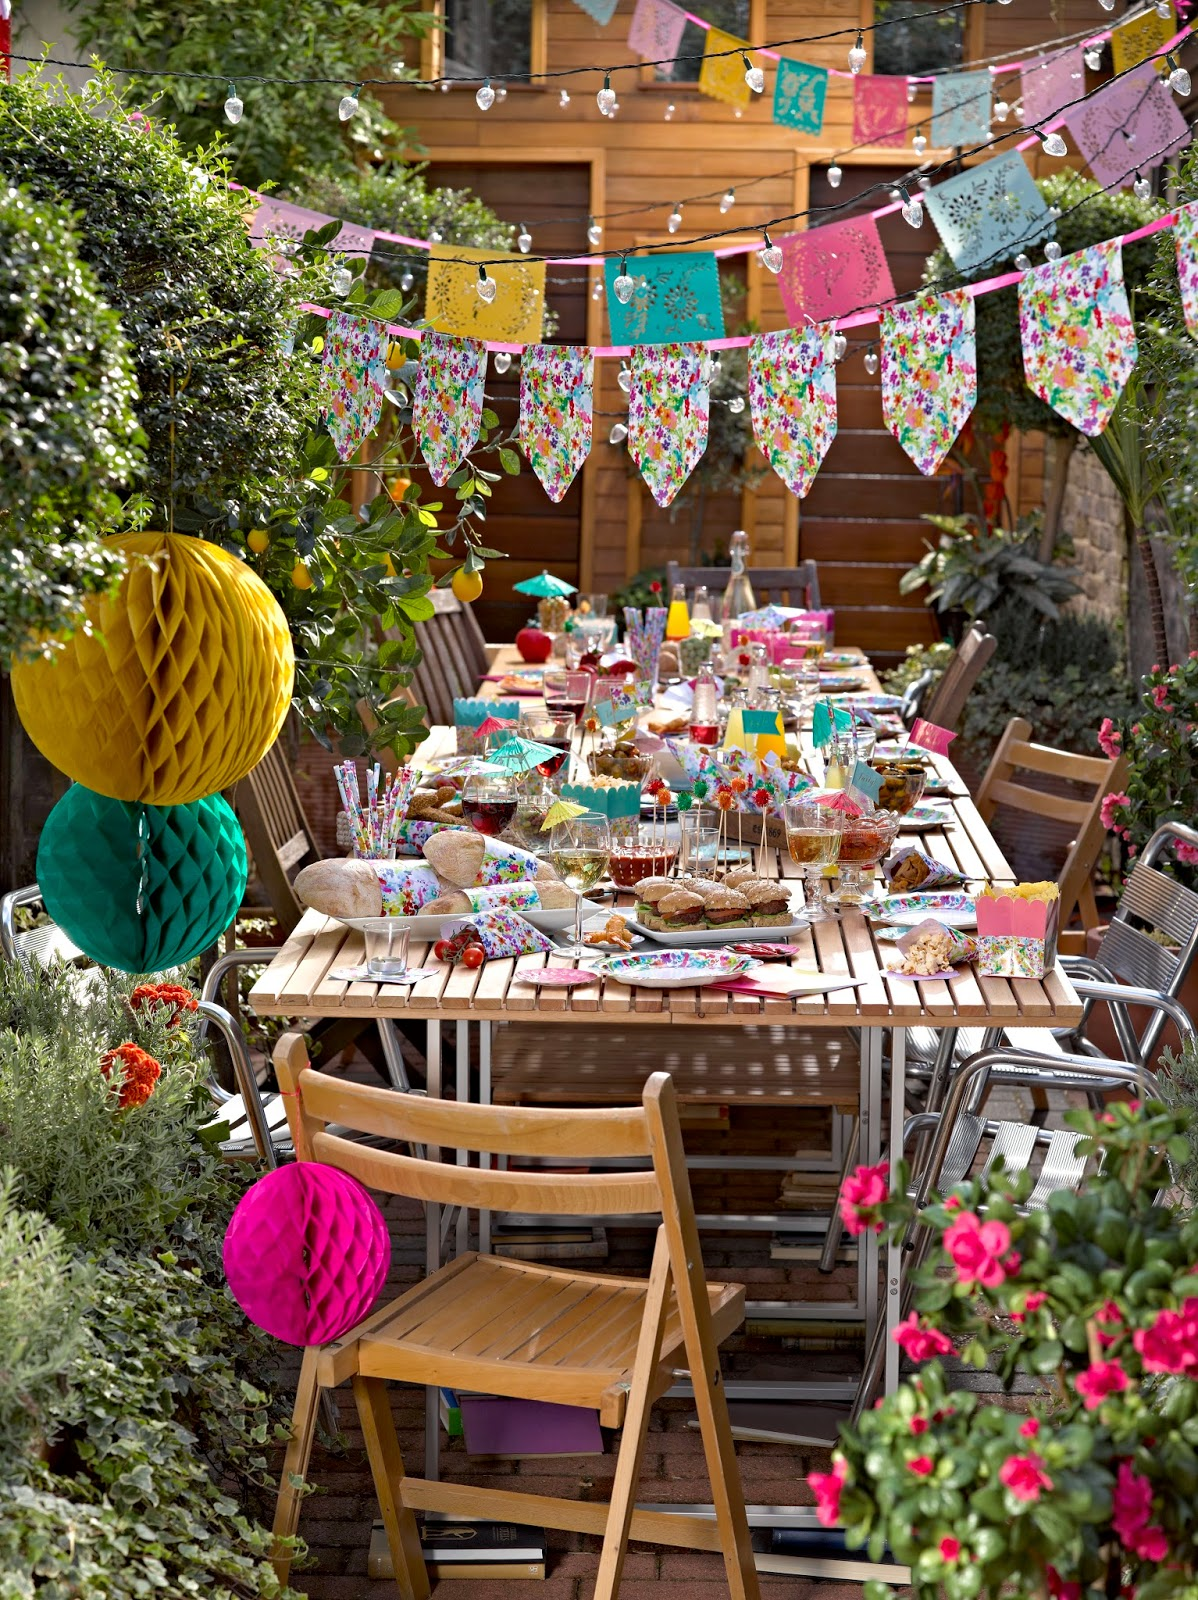 Cake junki garden party decorations for Garden decoration ideas pictures